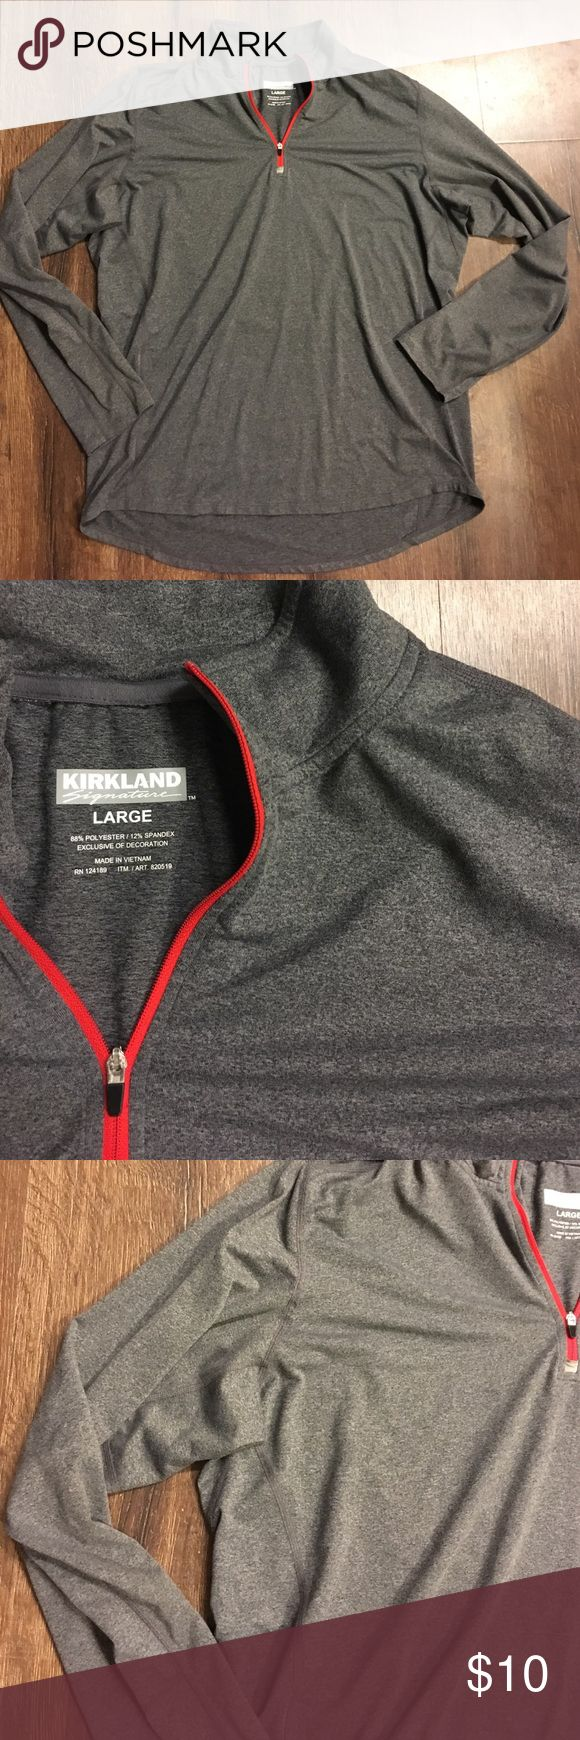 Mens gray athletic pull over, Kirkland Large Great condition, wore once. Red quarter zip, gray stretchy athletic material. Polyester and spandex. kirkland signature Shirts